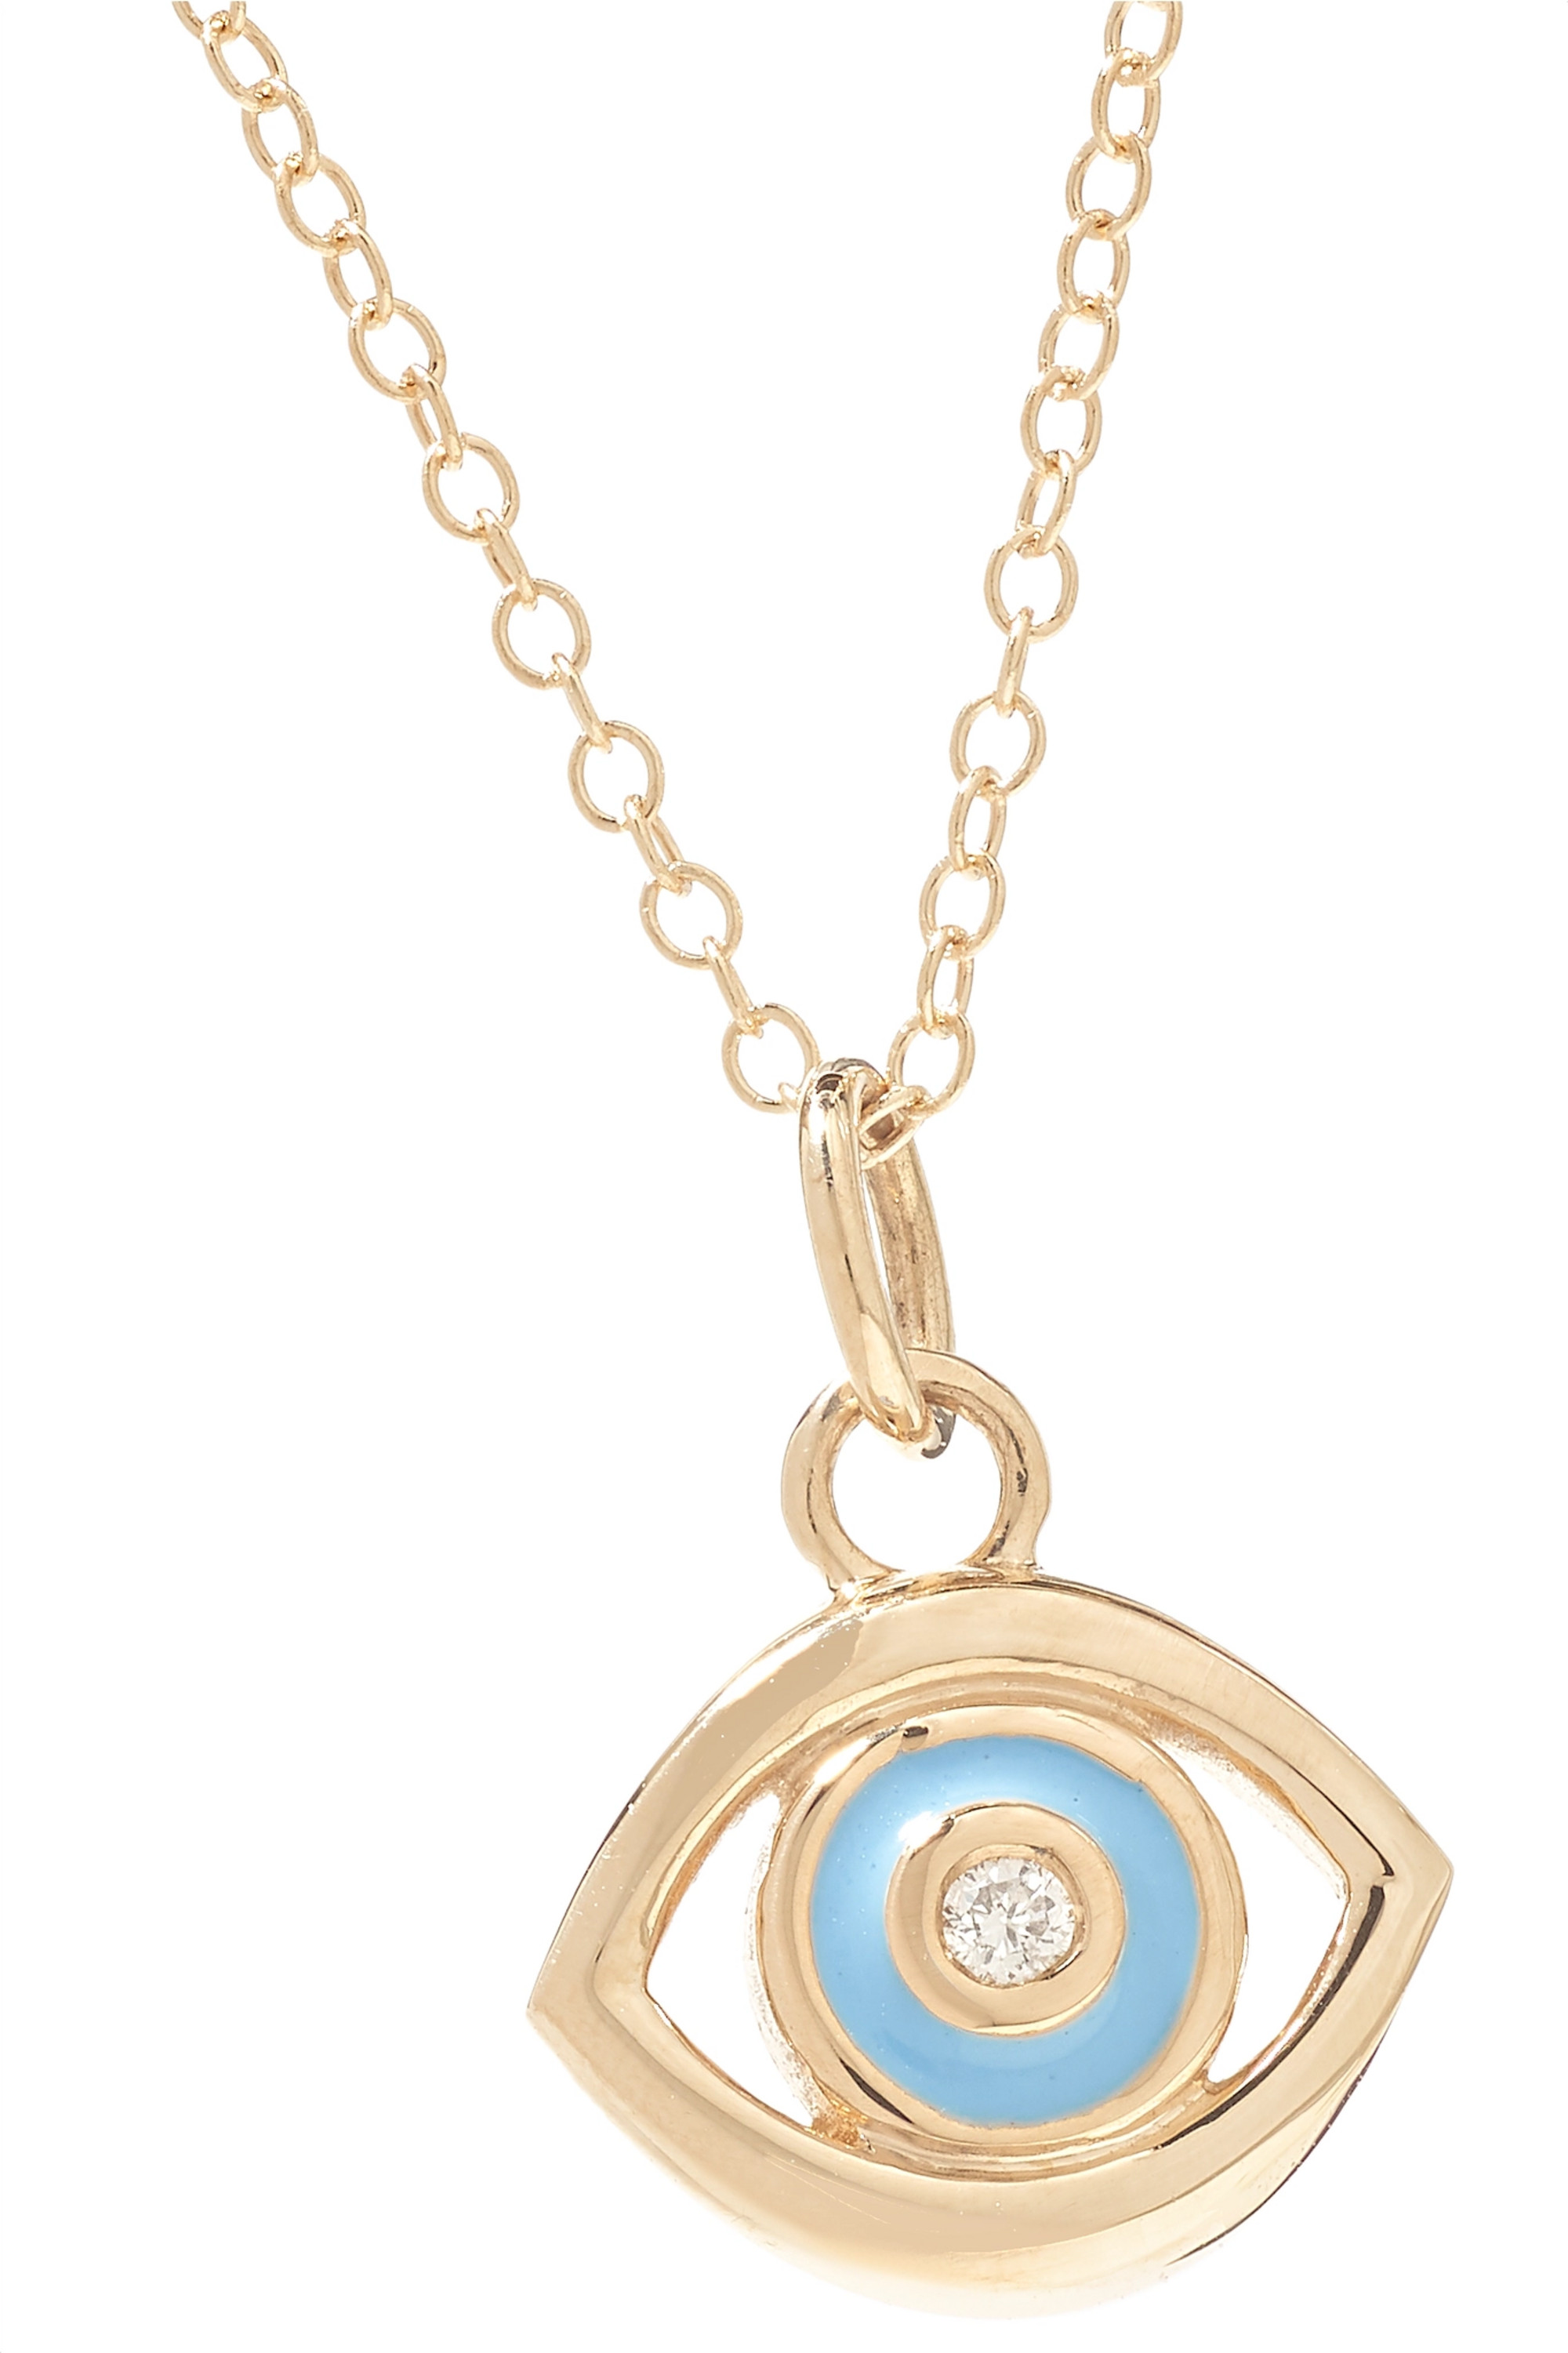 ALISON LOU Evil Eye 14-karat gold, diamond and enamel necklace